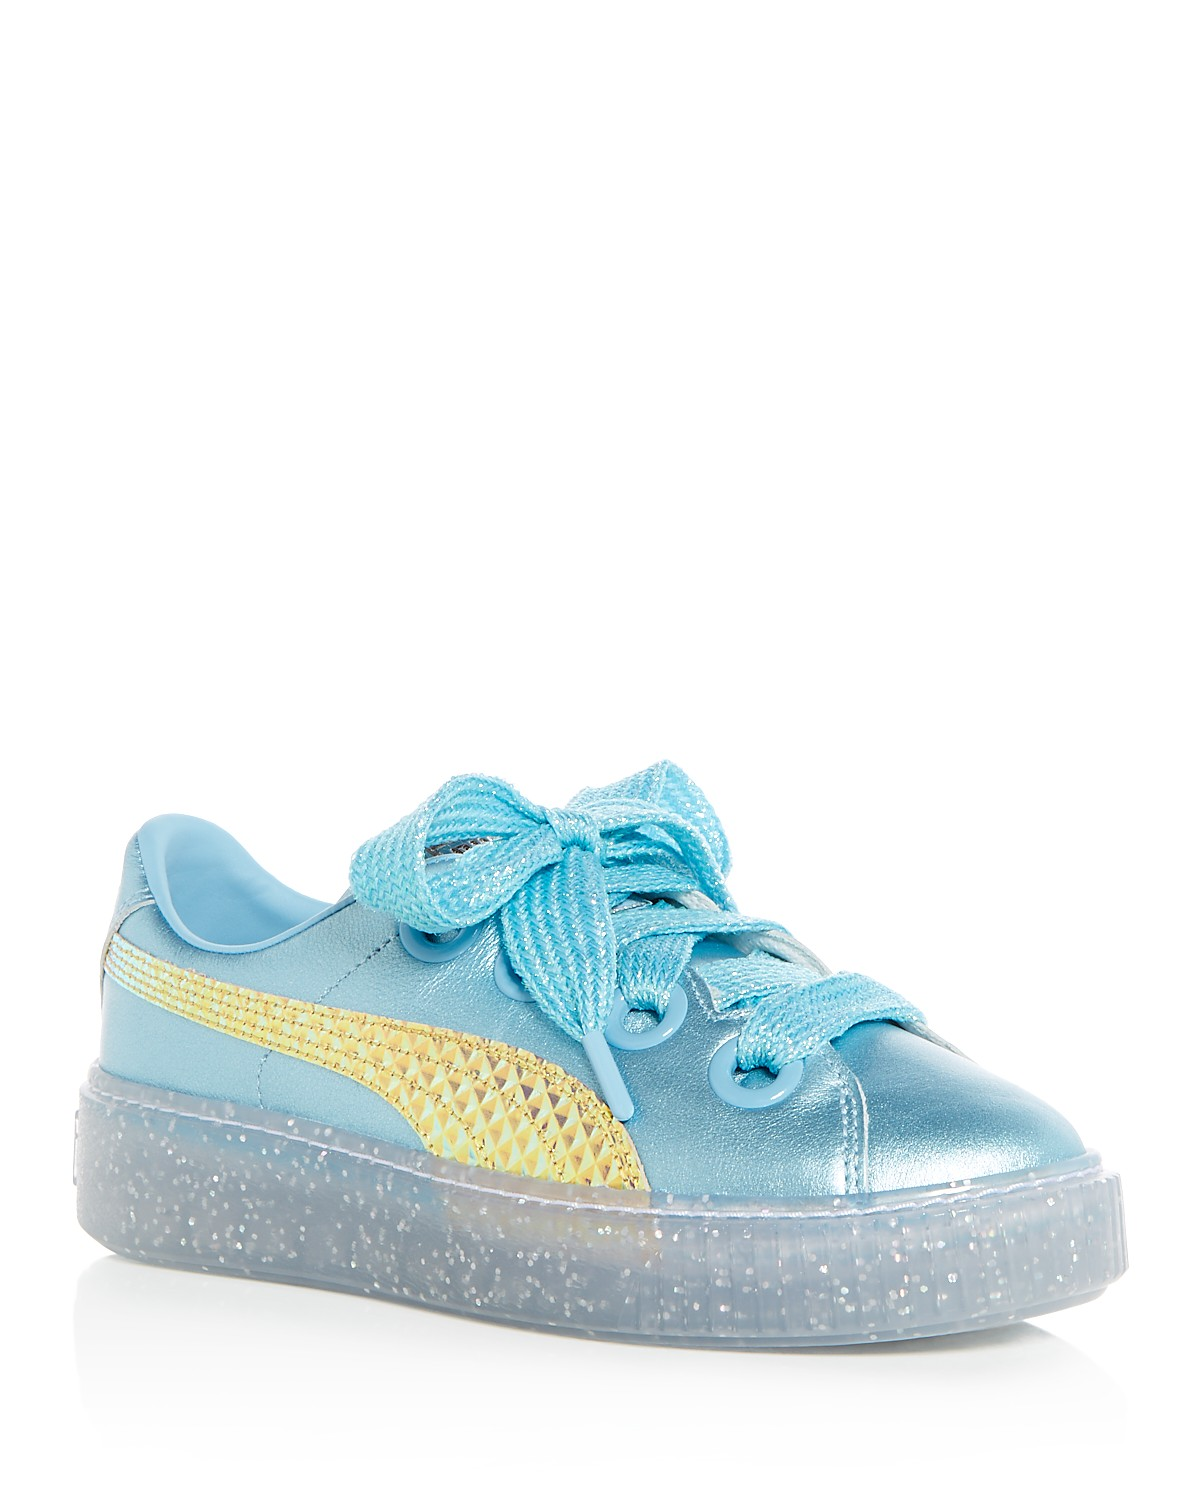 Puma X Sophia Webster Women's Glitter Princess Leather Lace Up Platform Sneakers HA3BVHD